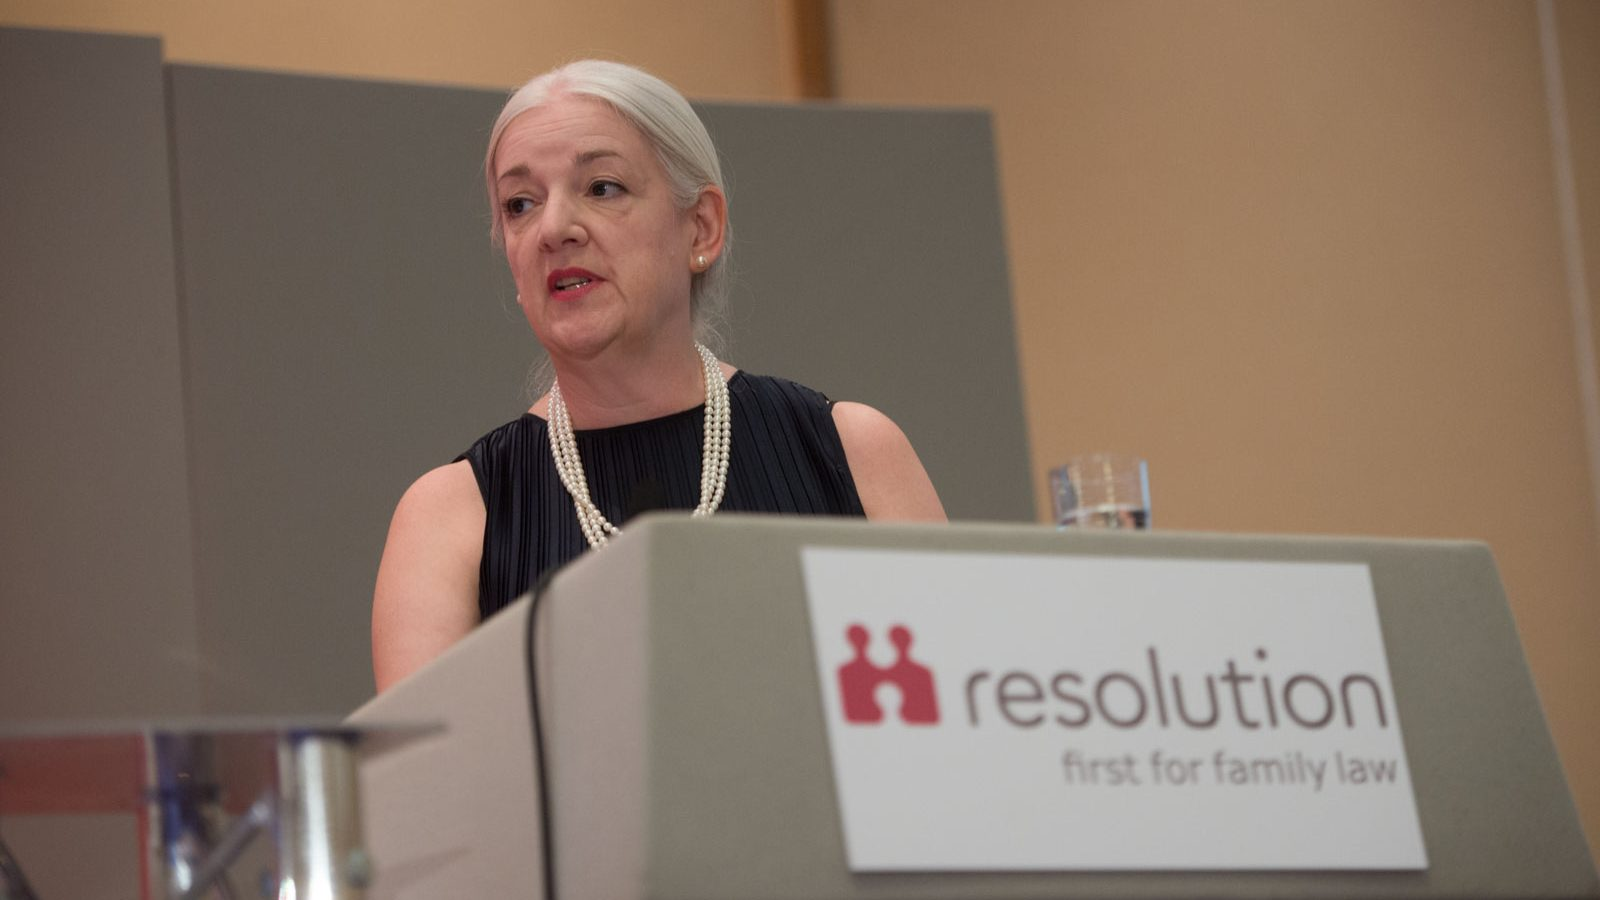 Margaret Heathcote, new Chair of Resolution, at the Resolution Conference 2018